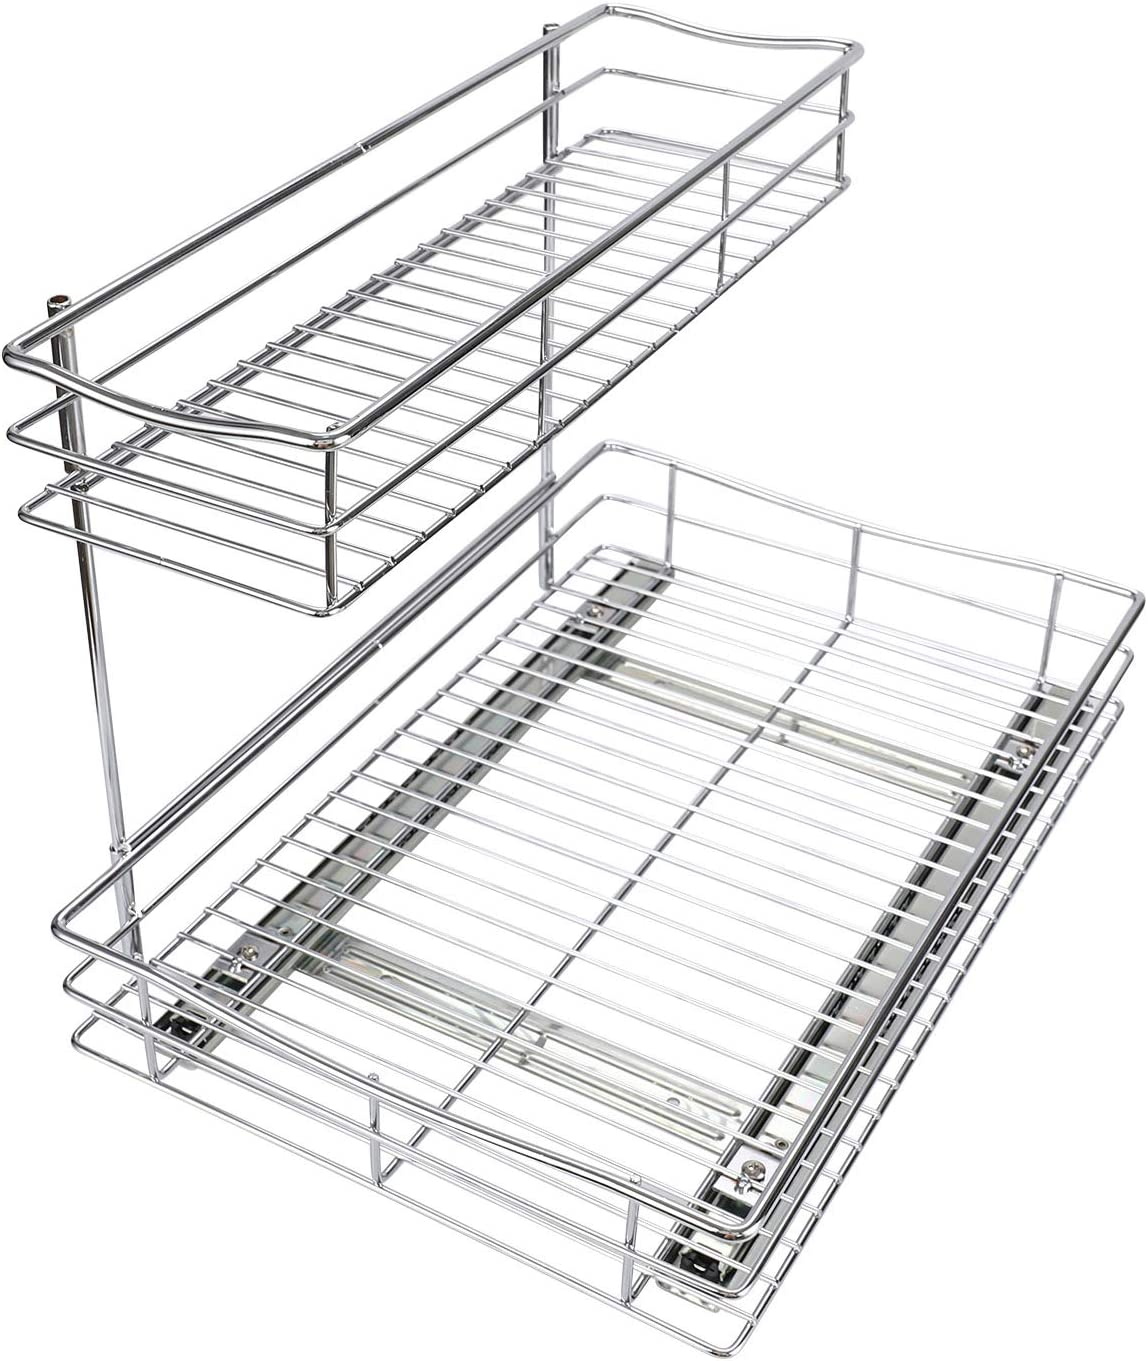 TQVAI Pull Out Under Sink Cabinet Organizer 2 Tier Slide Wire Shelf Basket - 11.49W x 17.08D x 11.85H - Request at Least 12 inch Cabinet Opening